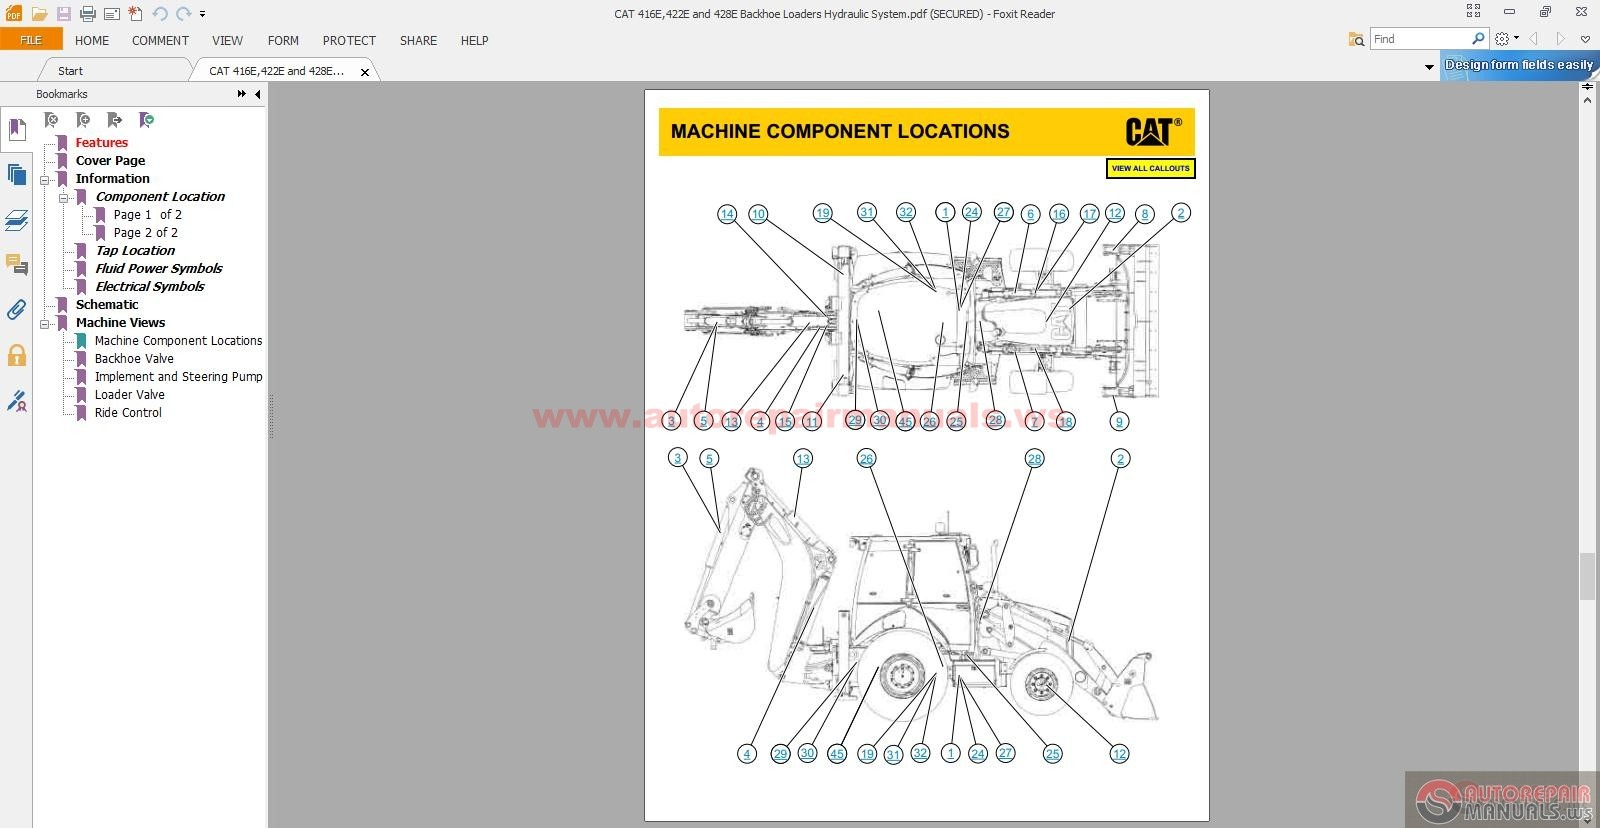 CAT_416E422E_and_428E_Backhoe_Loaders_Hydraulic_System2 cat 416e,422e and 428e backhoe loaders hydraulic system auto cat 416 wiring diagram at edmiracle.co